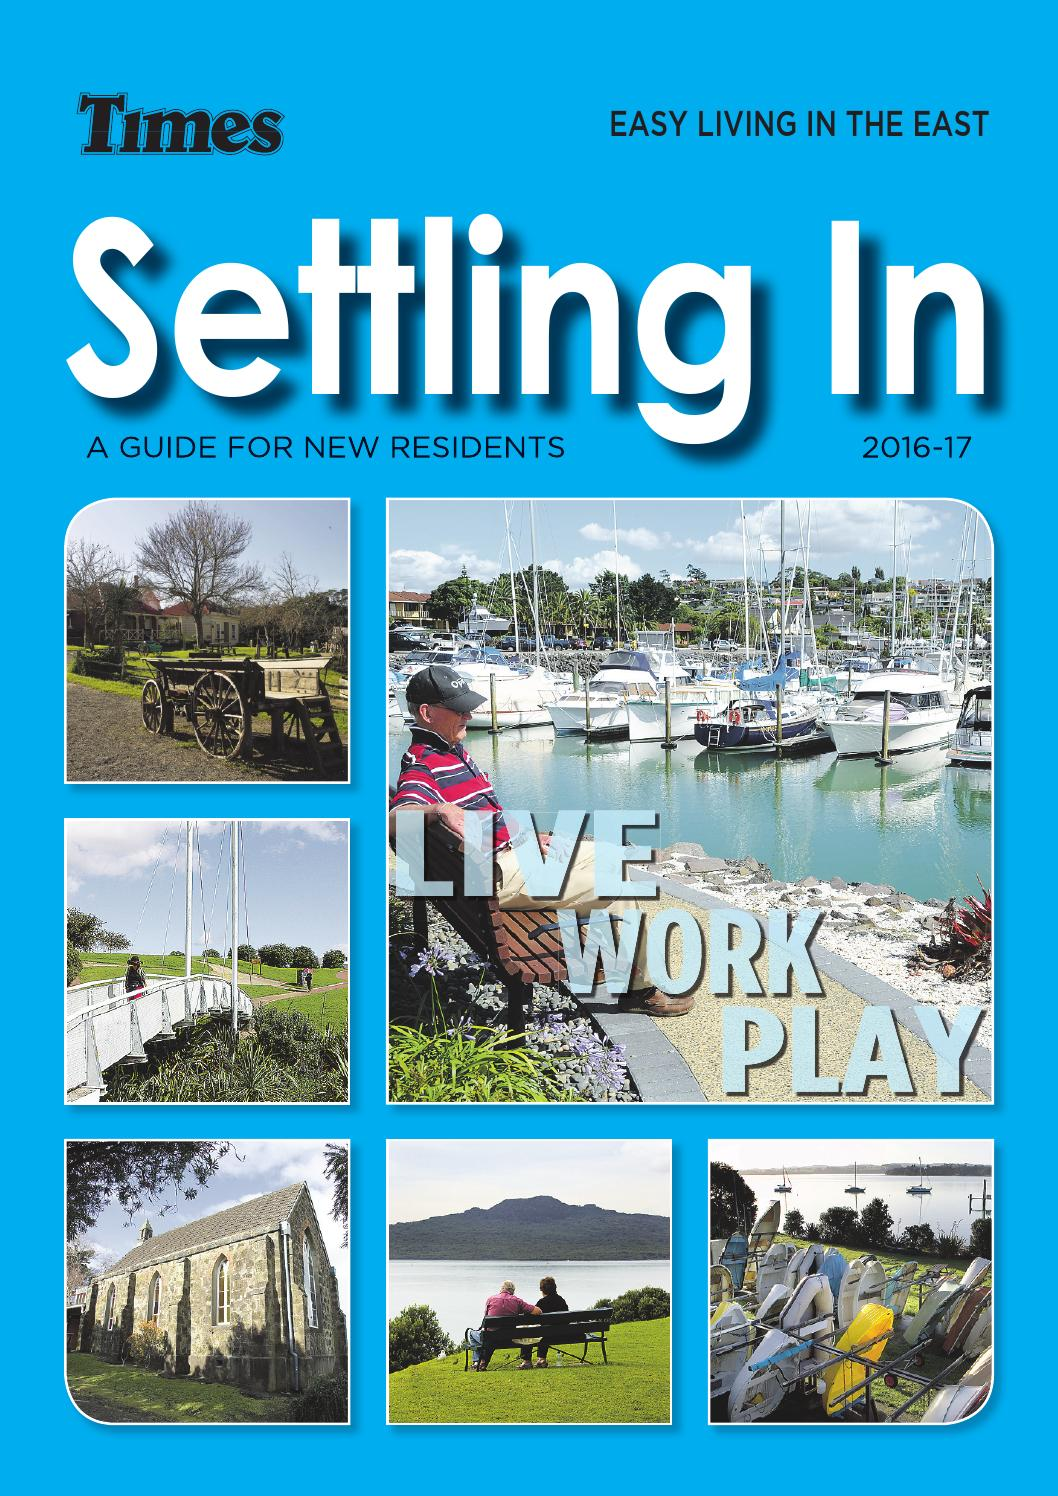 Settling In East 2016-17 by Times Media - issuu